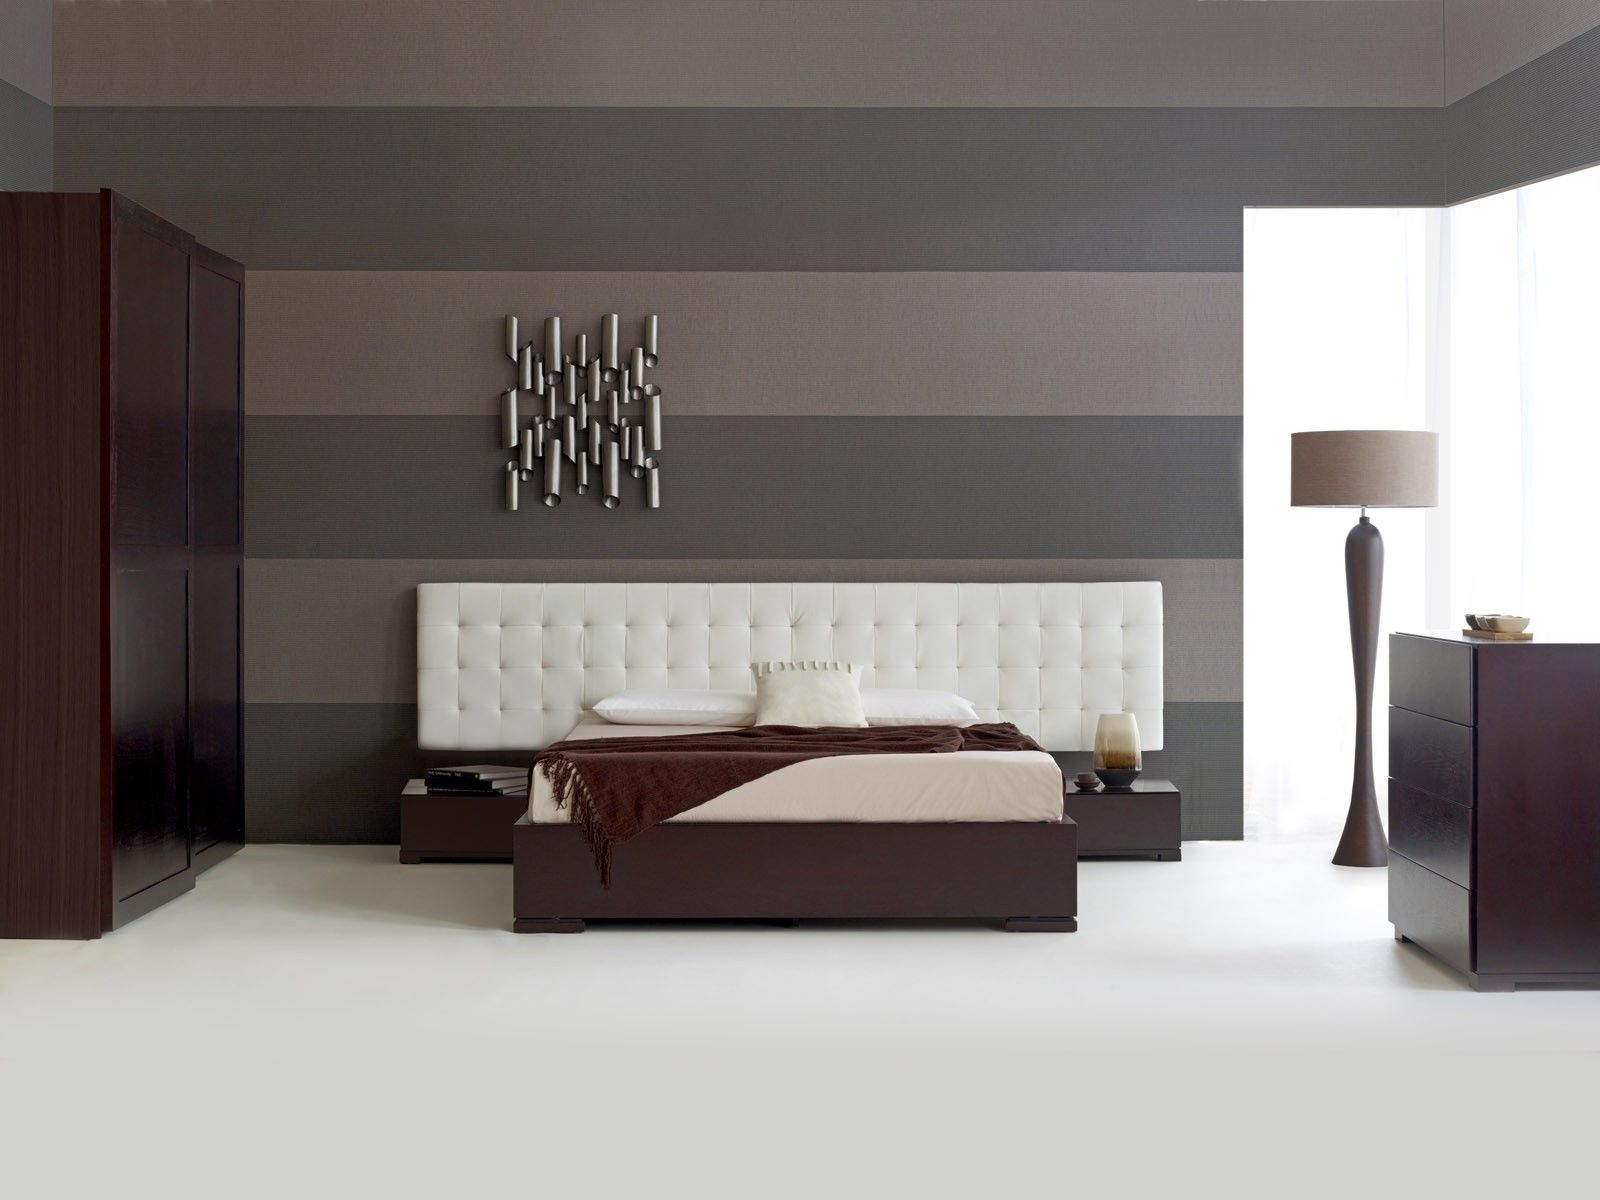 Simple bed furniture design - Modern Bedroom Furniture